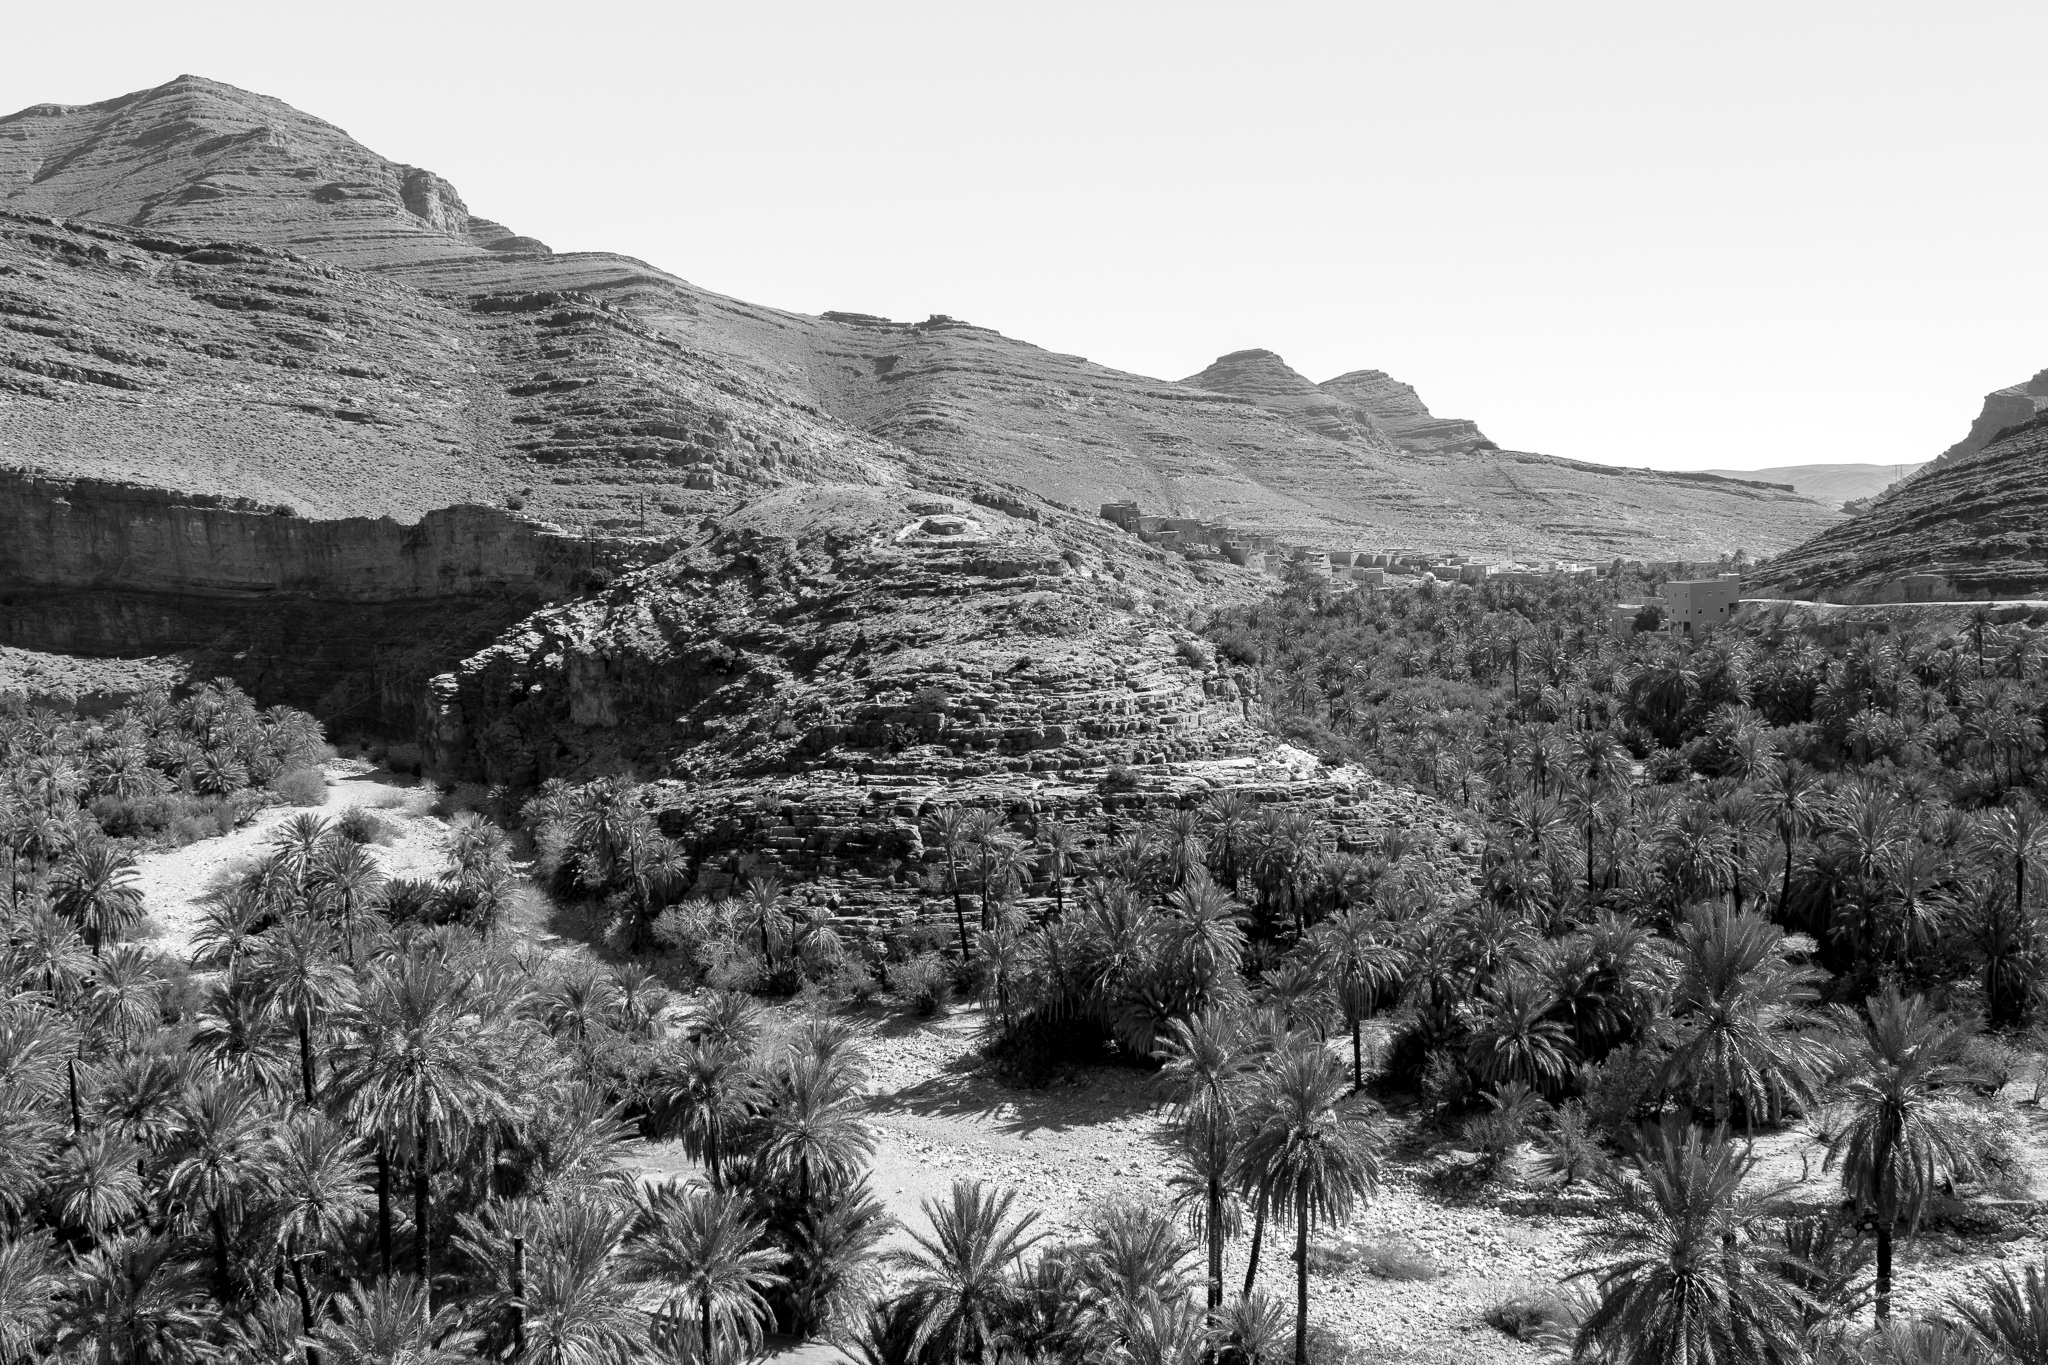 The valley of Ait Mansour, located south of Tafraoute and fully in the Anti Atlas, impresses with the incredible gorges that dominate its palm groves, an unusual landscape of granite rocks and red cliffs.